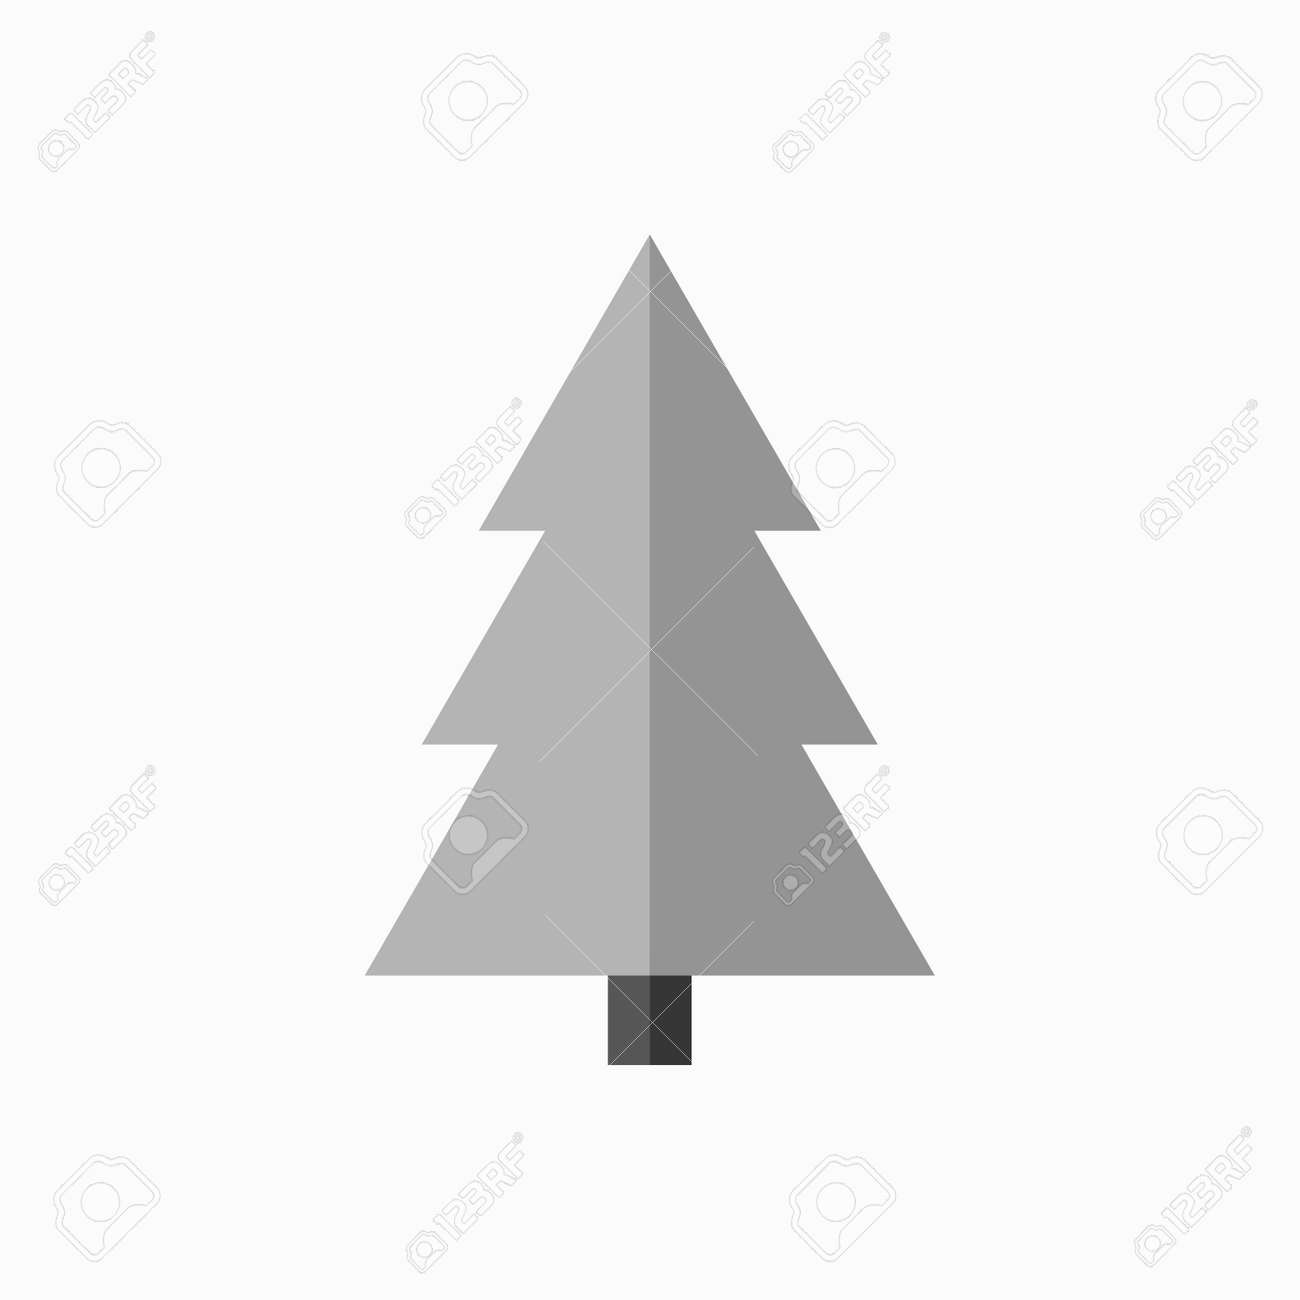 Christmas Trees Silhouette.Christmas Tree Sign Simple Cartoon Icon Black Template Silhouette